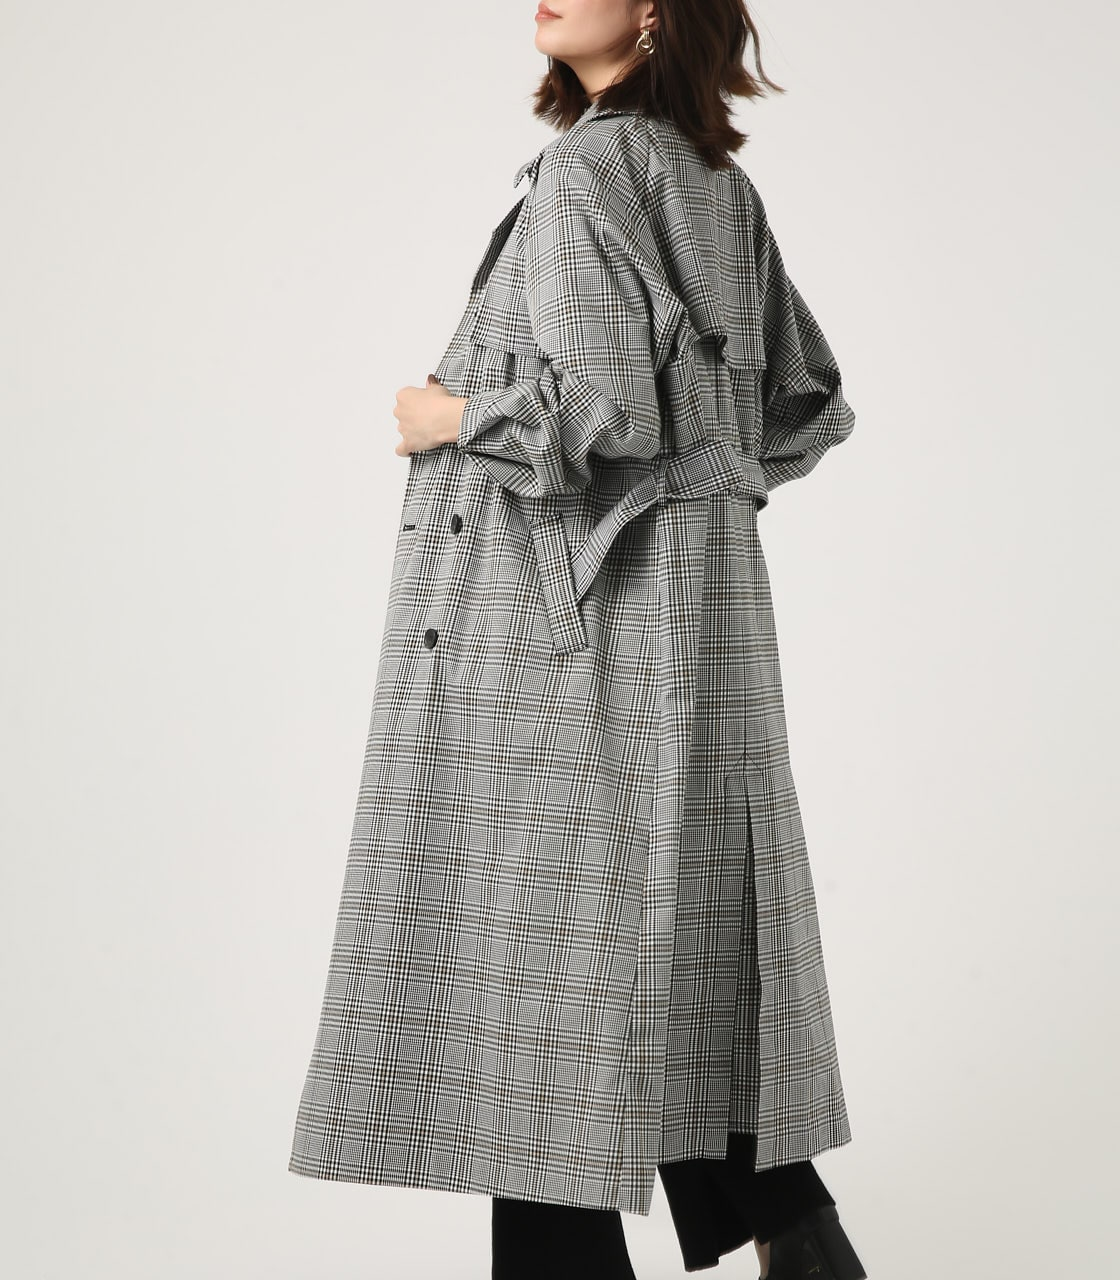 【AZUL BY MOUSSY】VOLUME SLEEVE LONG TRENCH COAT 詳細画像 柄BLK 3